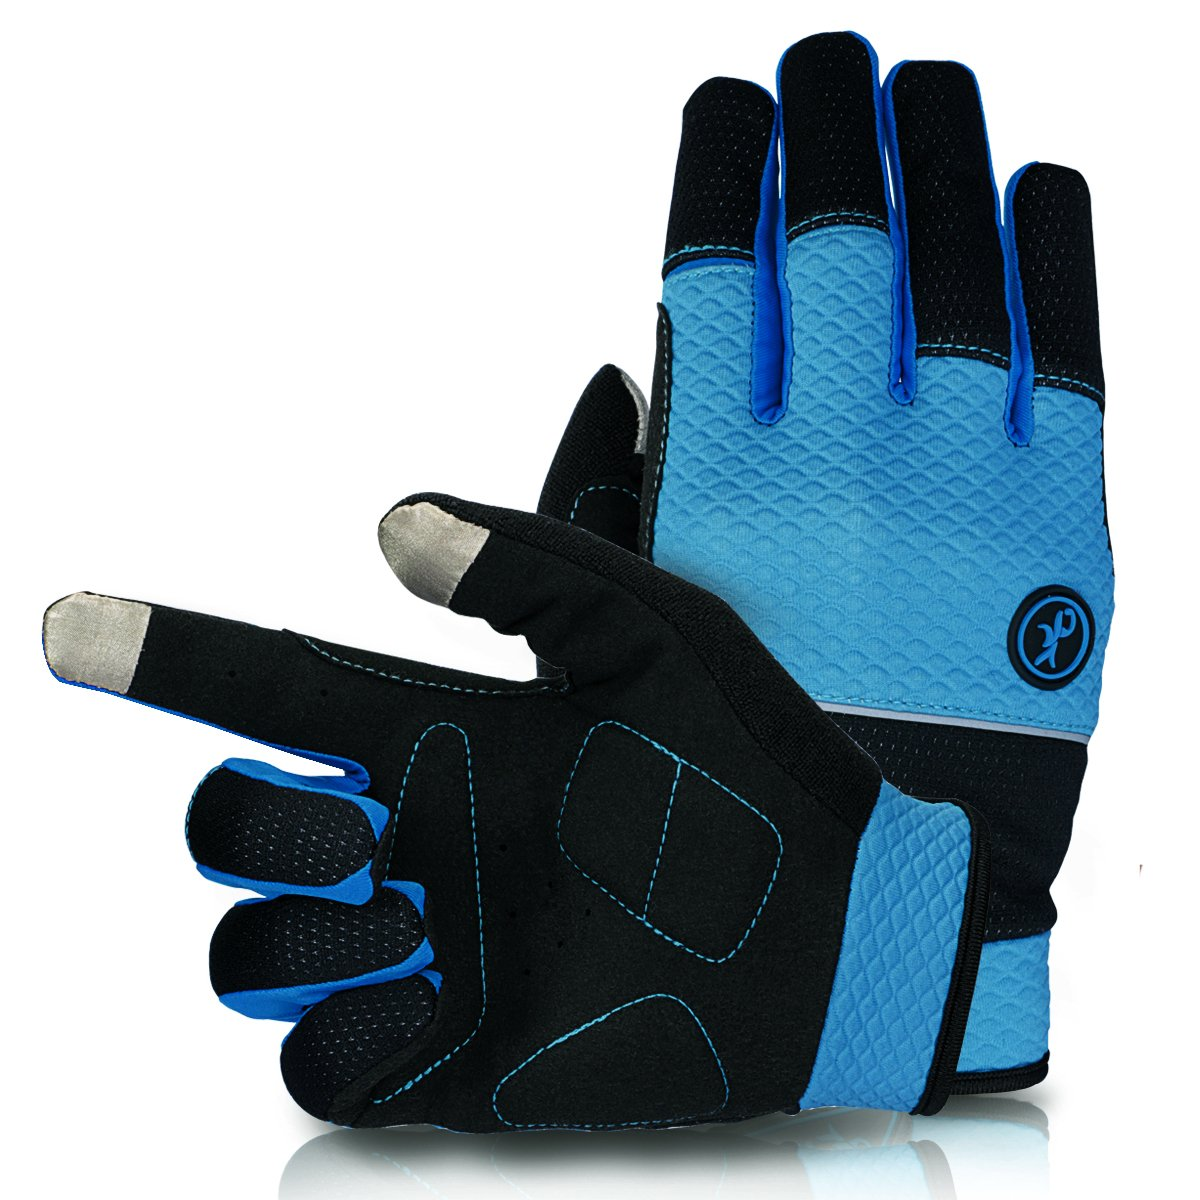 Motorcycle gloves to prevent numbness - Amazon Com Kupeers Cycling Gloves Touch Screen Cycling Gloves Road Racing Bicycle Gloves Windproof Cycling Gel Pad Riding Gloves Velcro Design Unisex